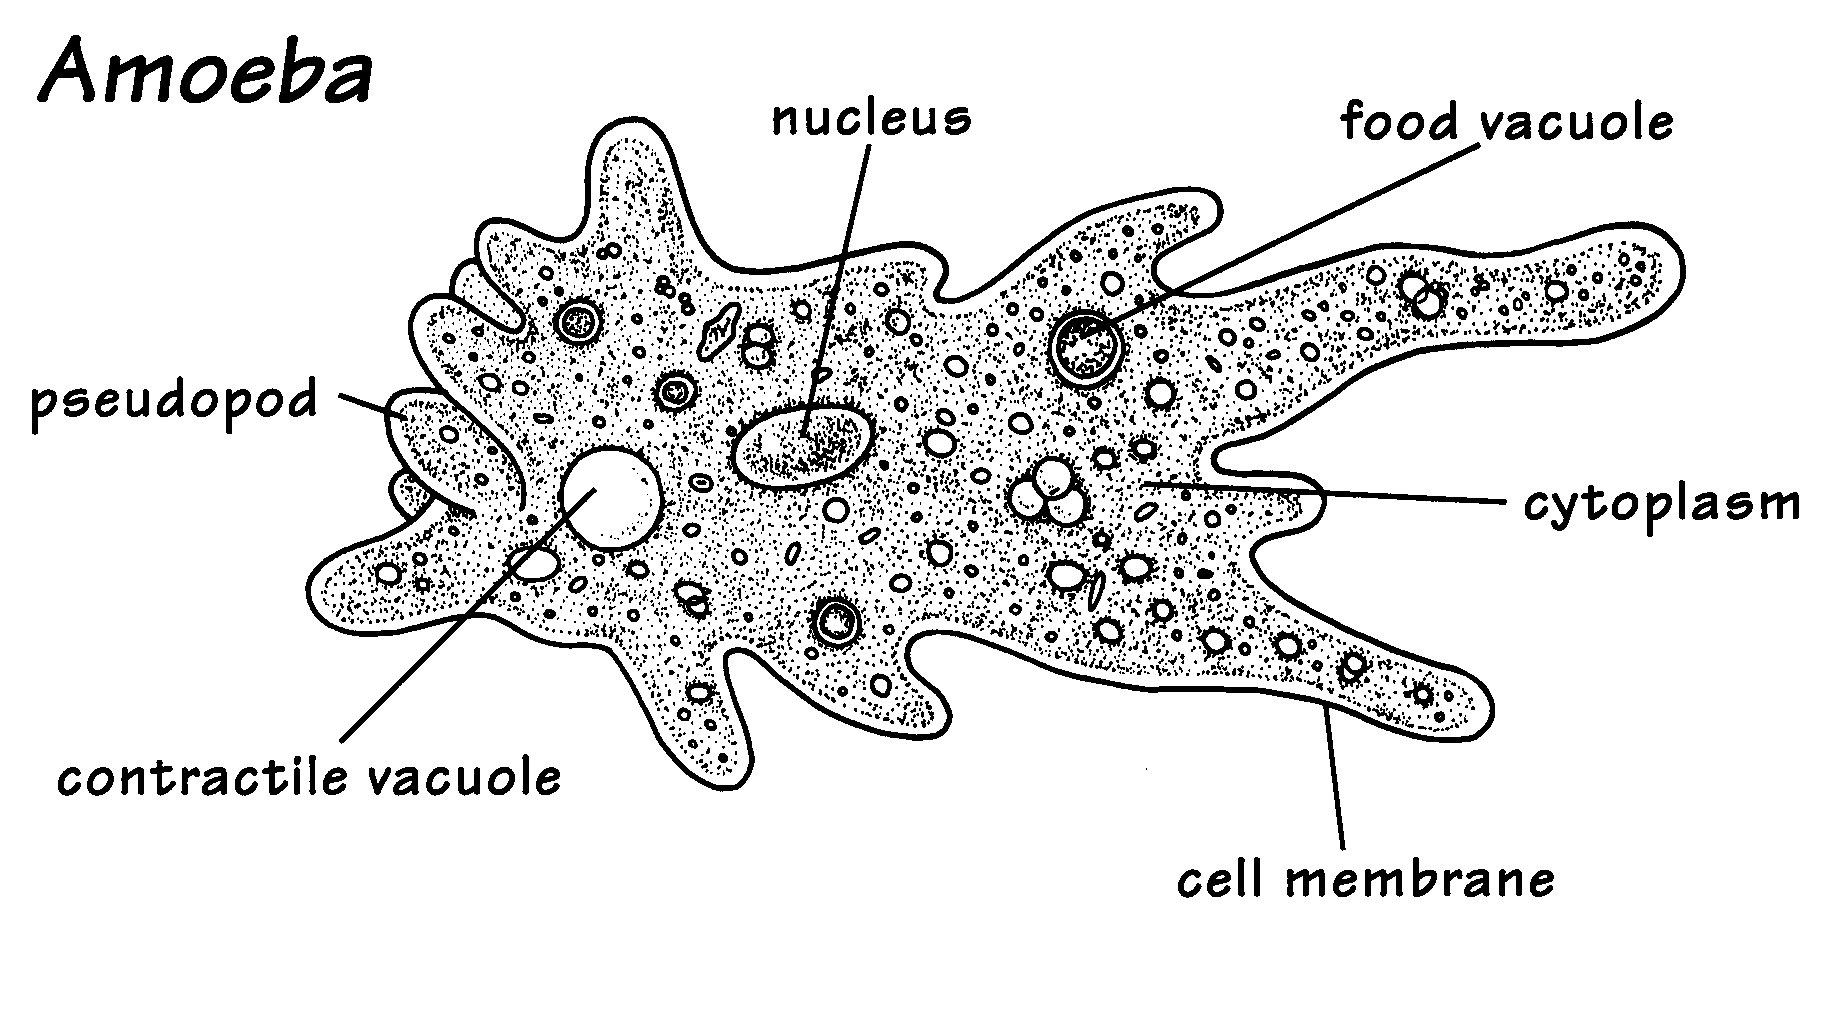 This Is A Unicellular Organism The Amoeba Which Is Made Up Of Only One Cell